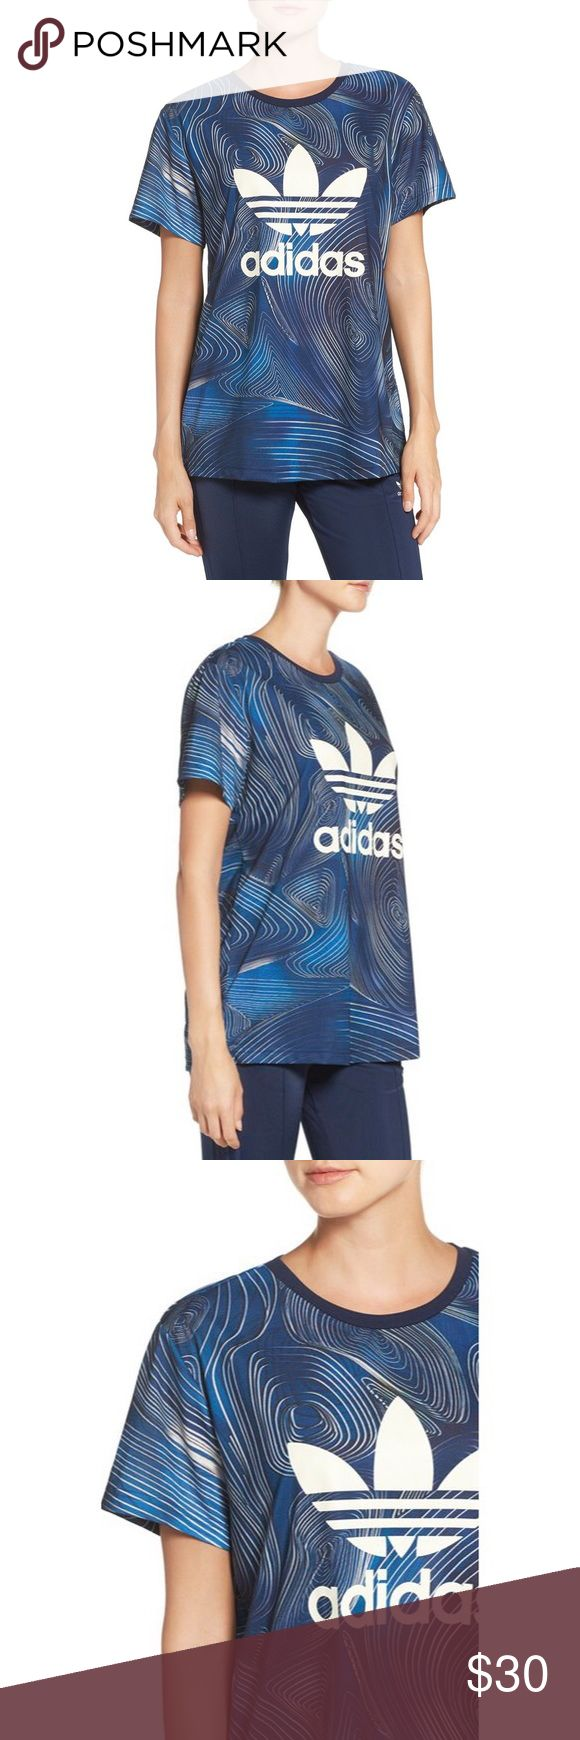 """NWT Adidas Originals 'BG' Logo Jersey Tee Athleisure meets street-style cool in this soft, boxy jersey tee swirling in eclectic designs with adidas' logo and trefoil emblazoned across the front. 28"""" length (size Medium) Crewneck Short sleeves 100% polyester Machine wash cold, dry flat Adidas Tops"""